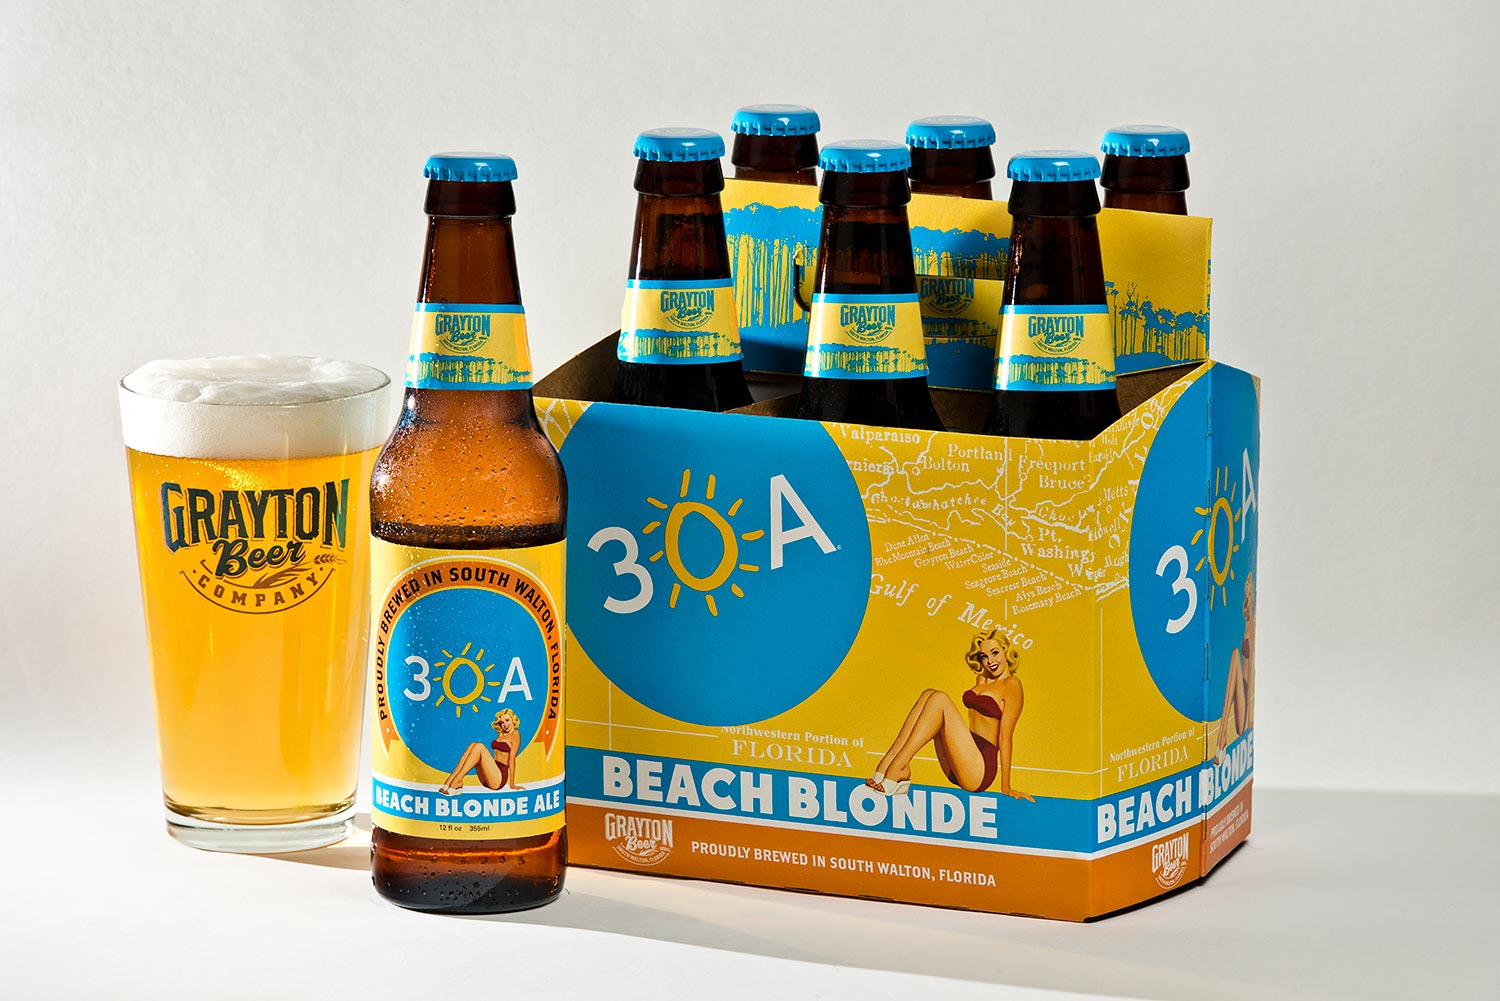 Grayton Beer Company 30A Beach Blonde